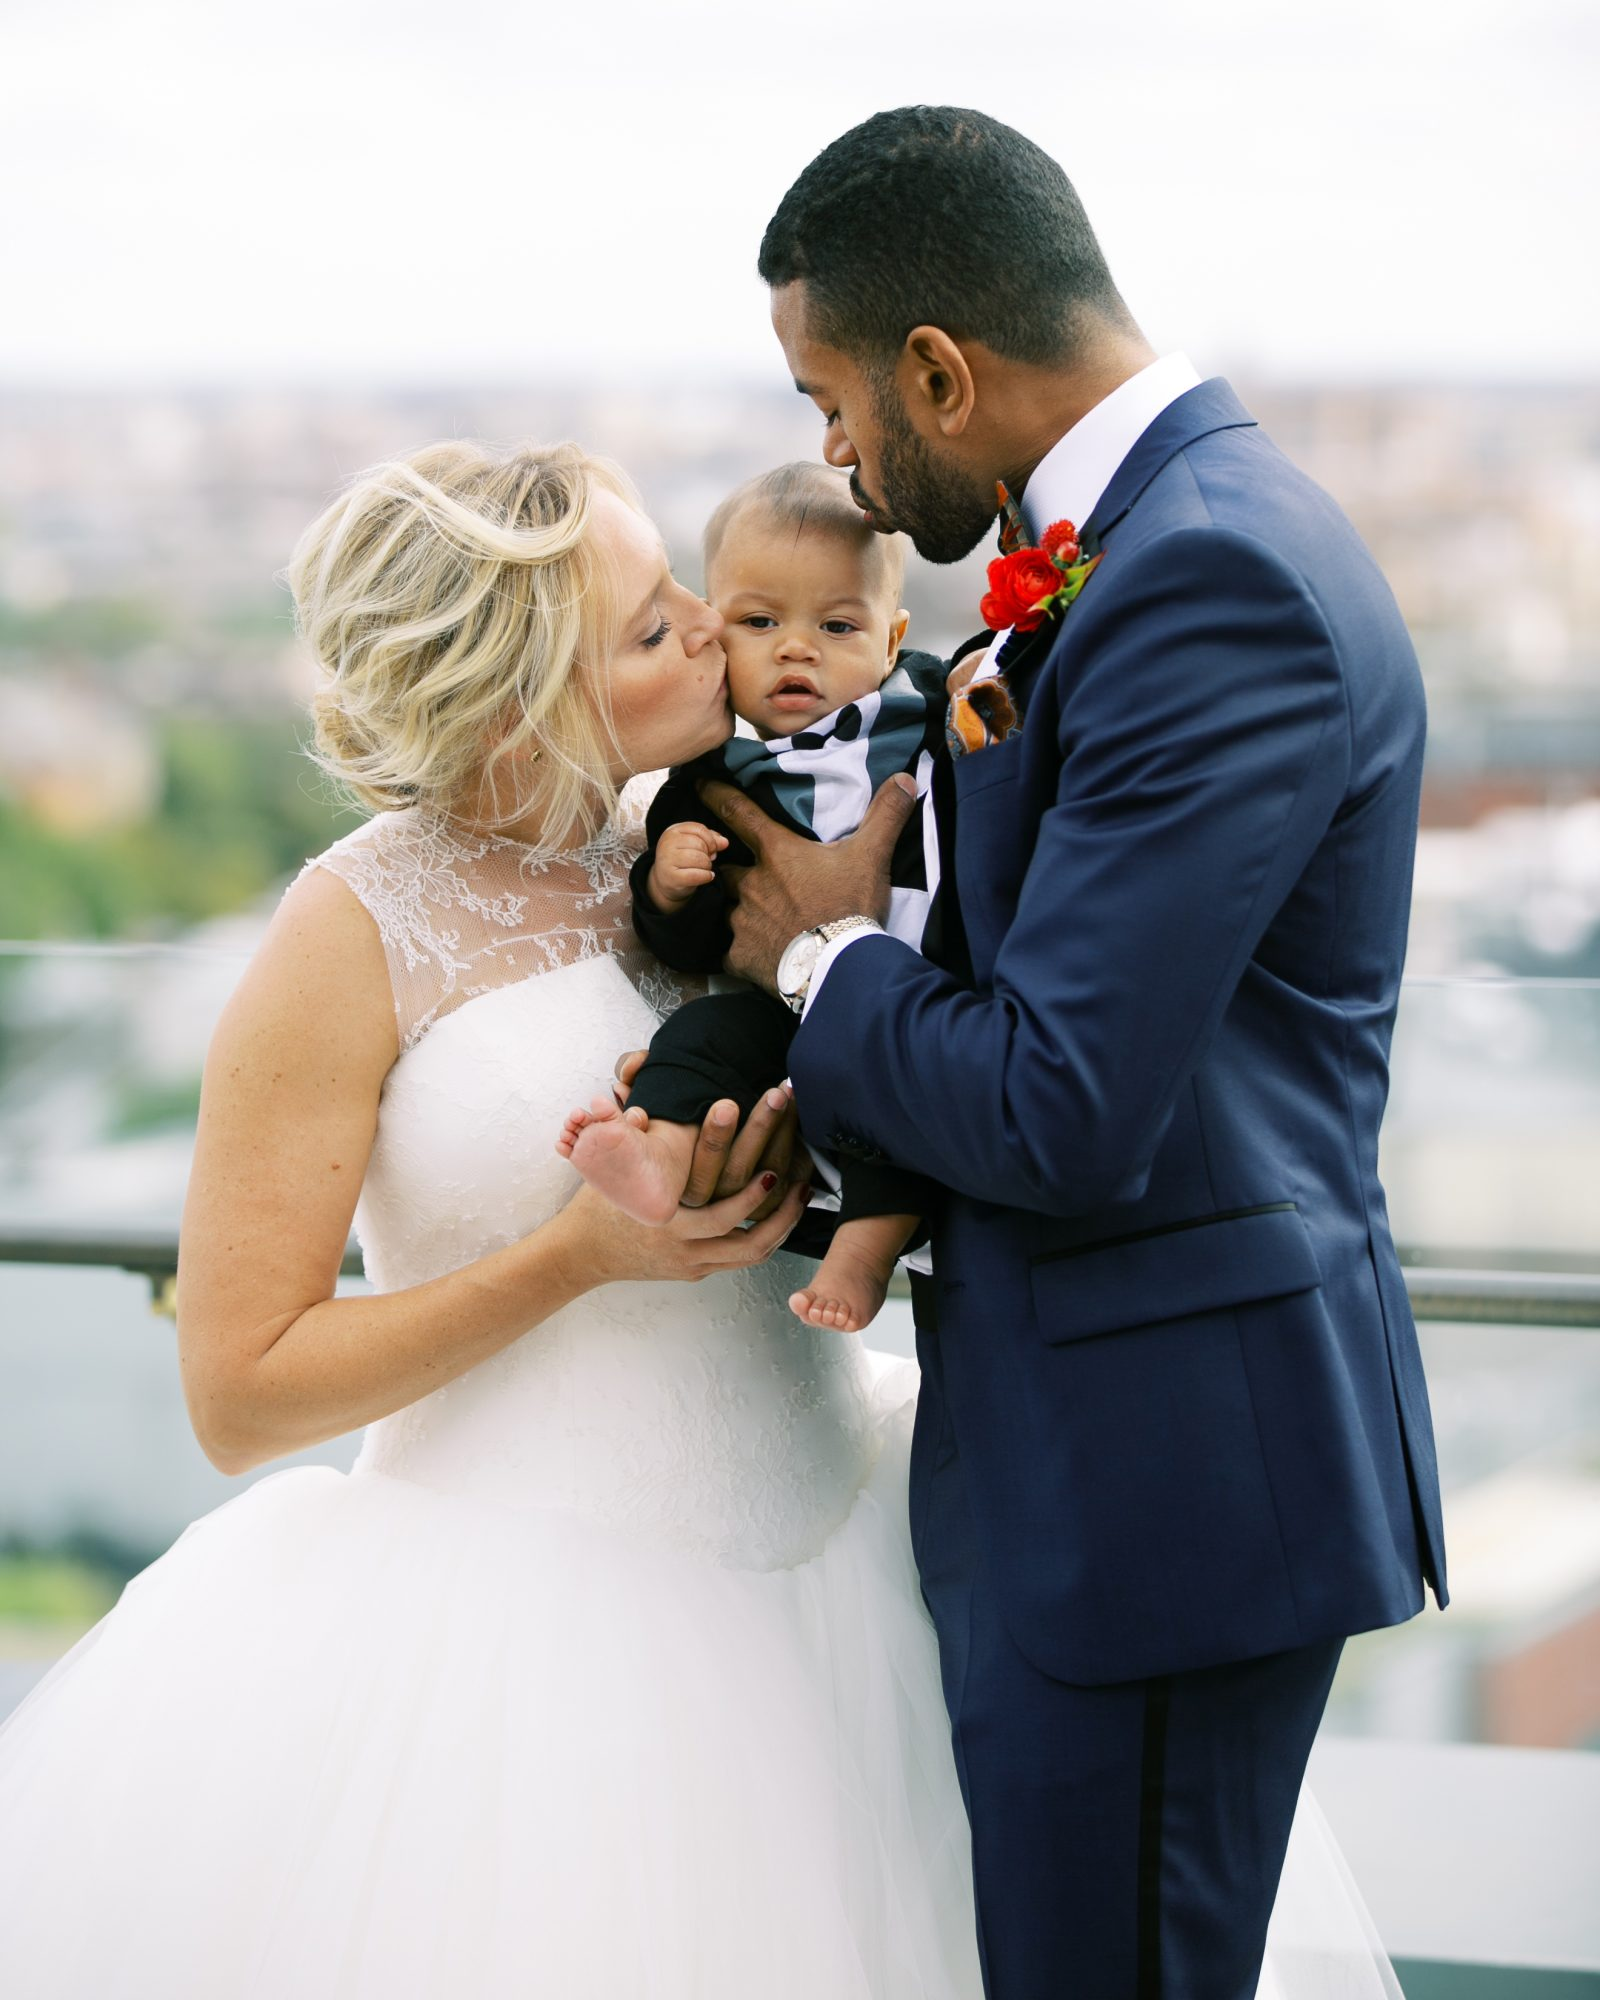 meaghan and david bride and groom with baby